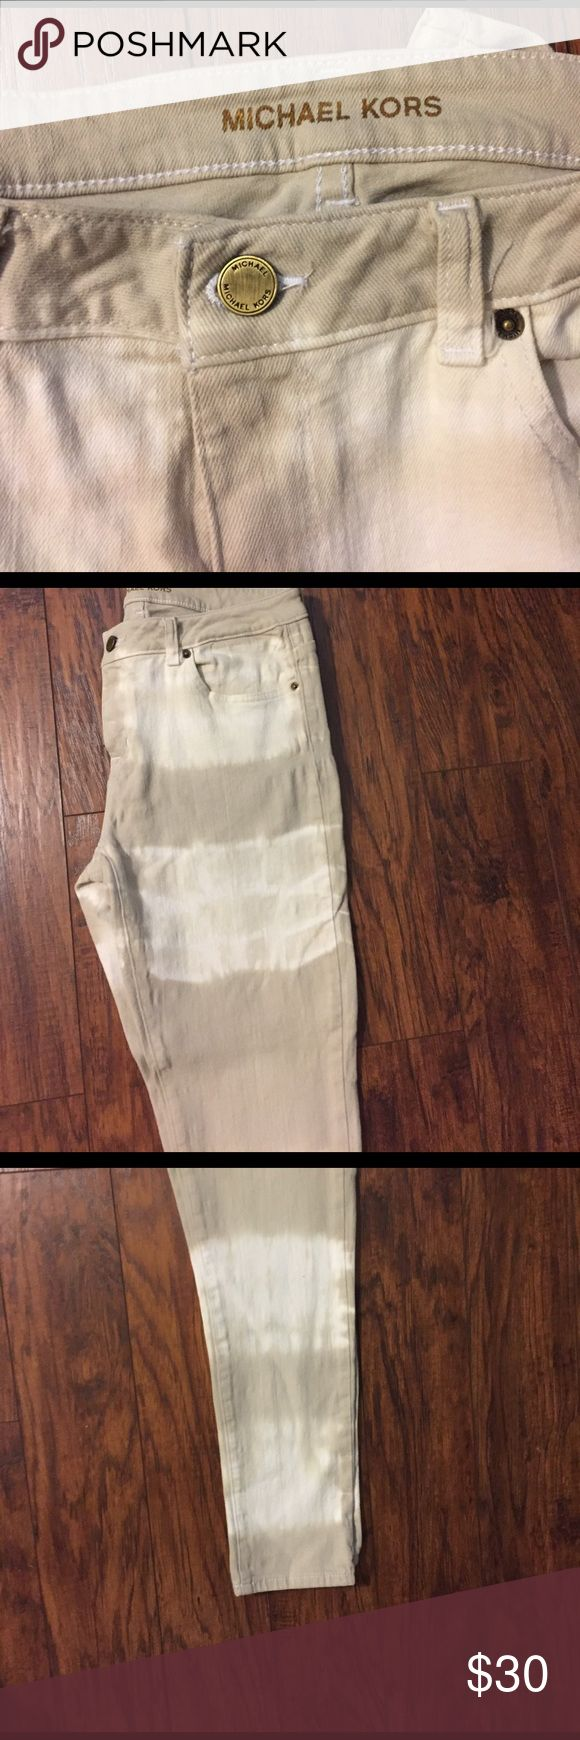 michael kors tie dye acid wash stripe skinny jeans michael kors tie dye acid wash stripe skinny jeans, cream and tan colors. size 6 Michael Kors Jeans Skinny